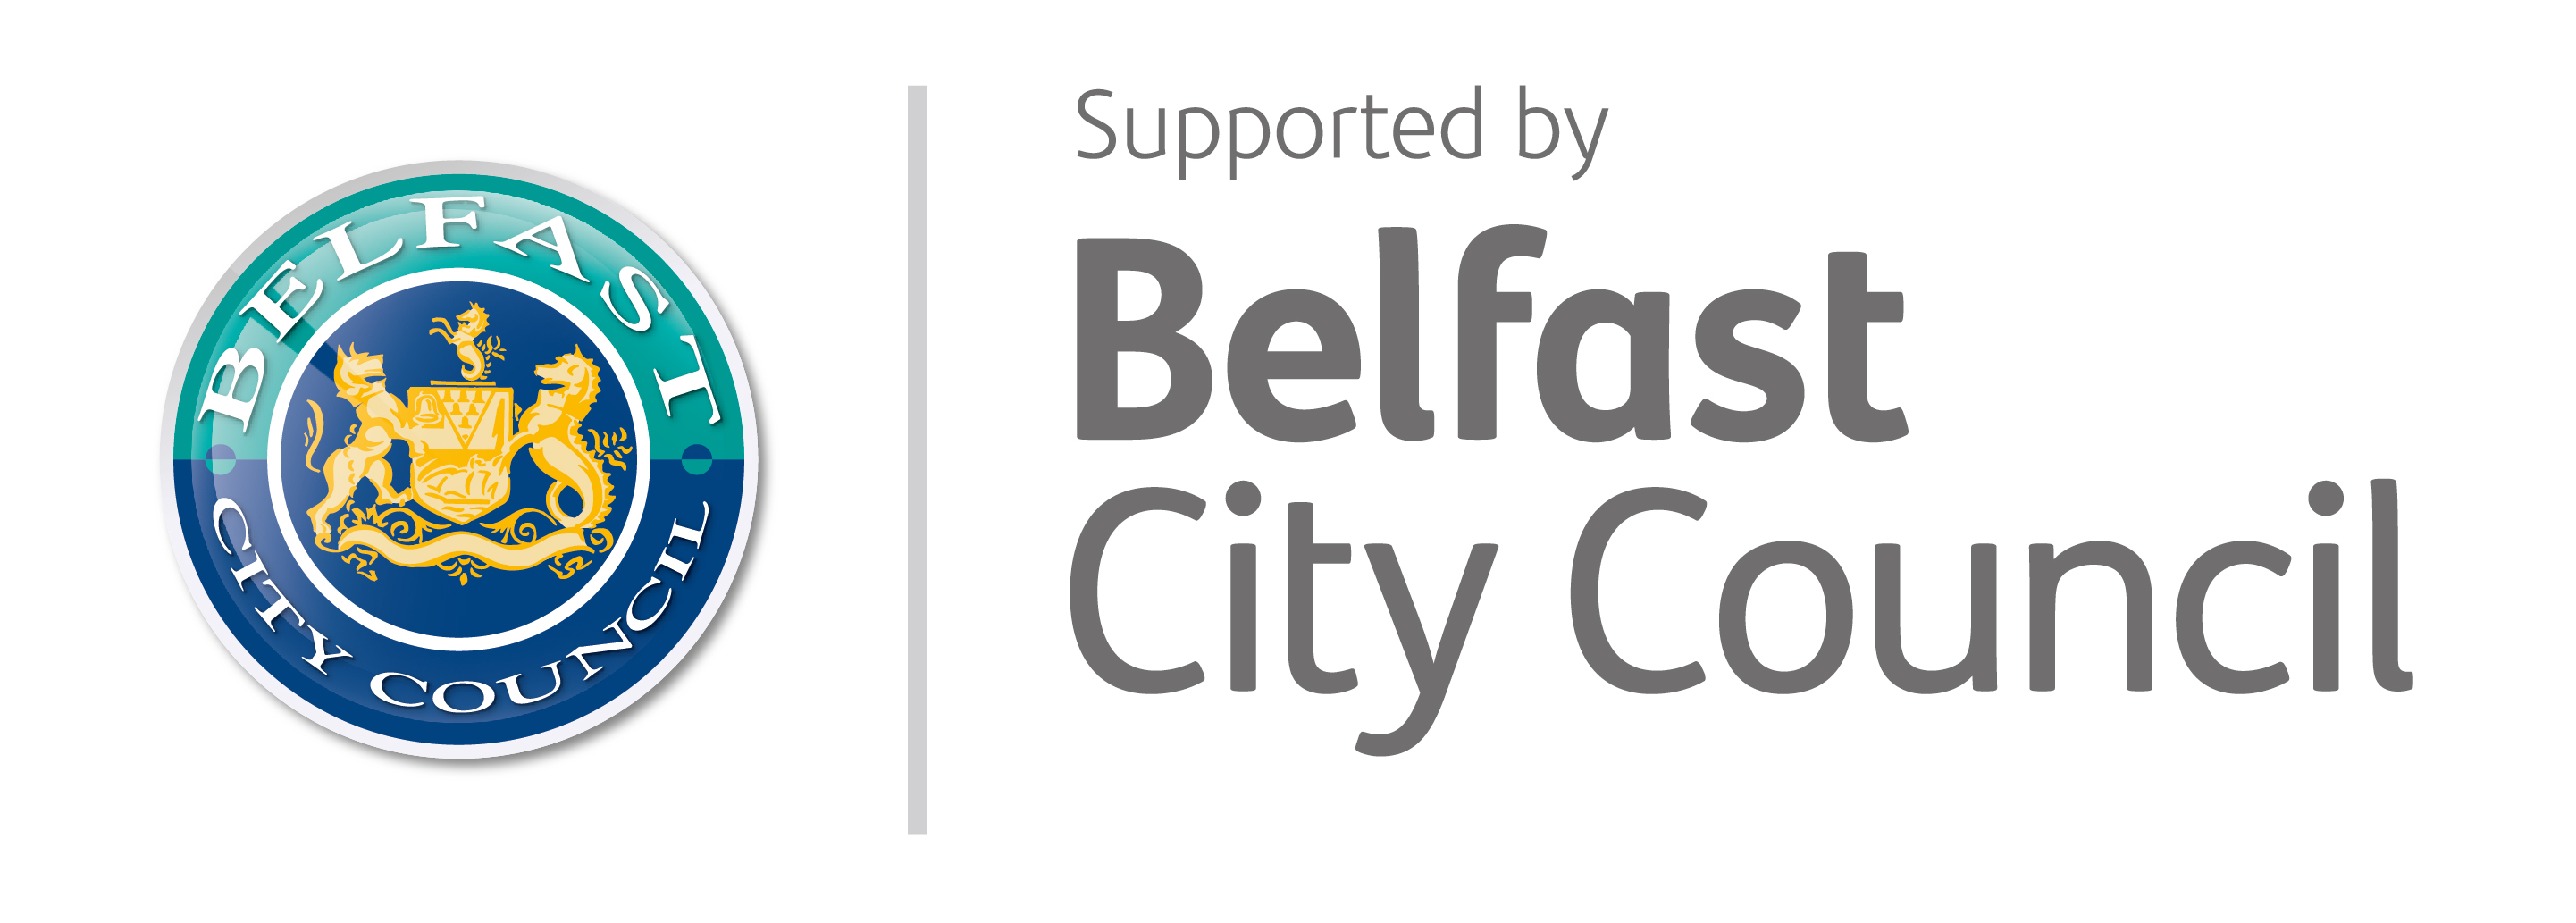 supported by Belfast City Council